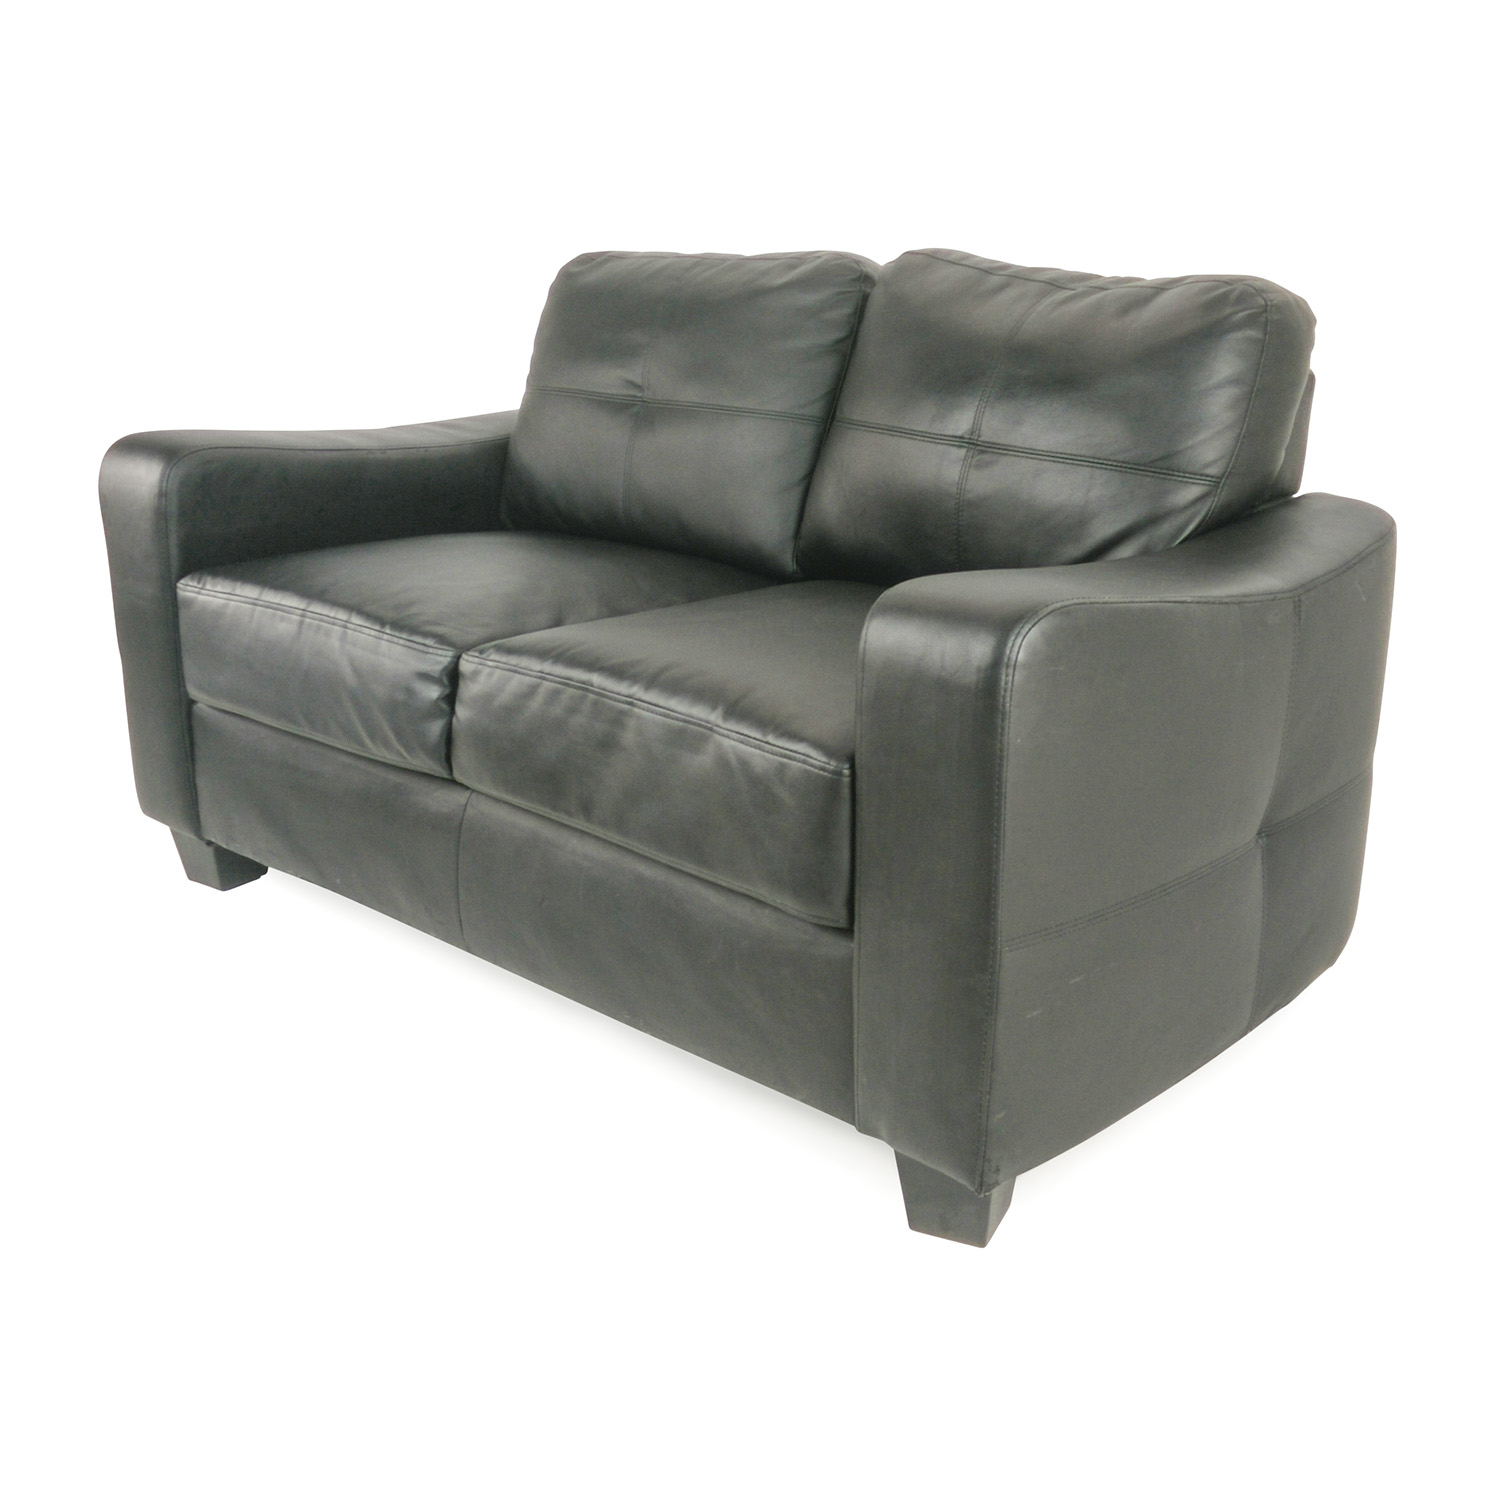 50 off black bonded leather loveseat sofas Loveseat black